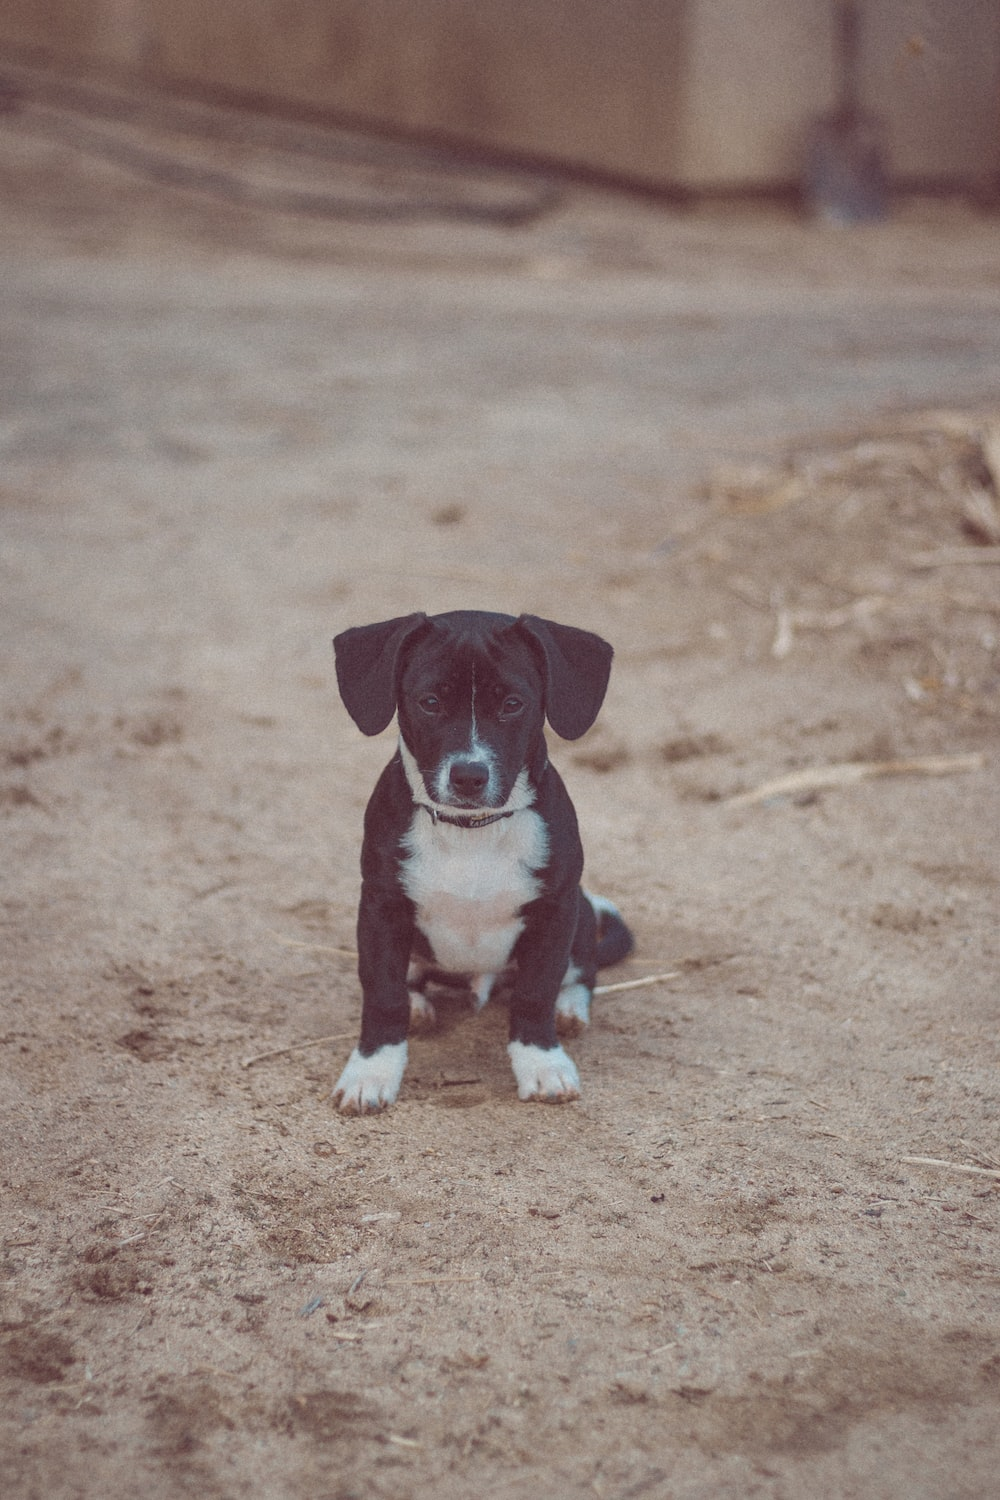 black and white short coat small dog sitting on brown sand during daytime